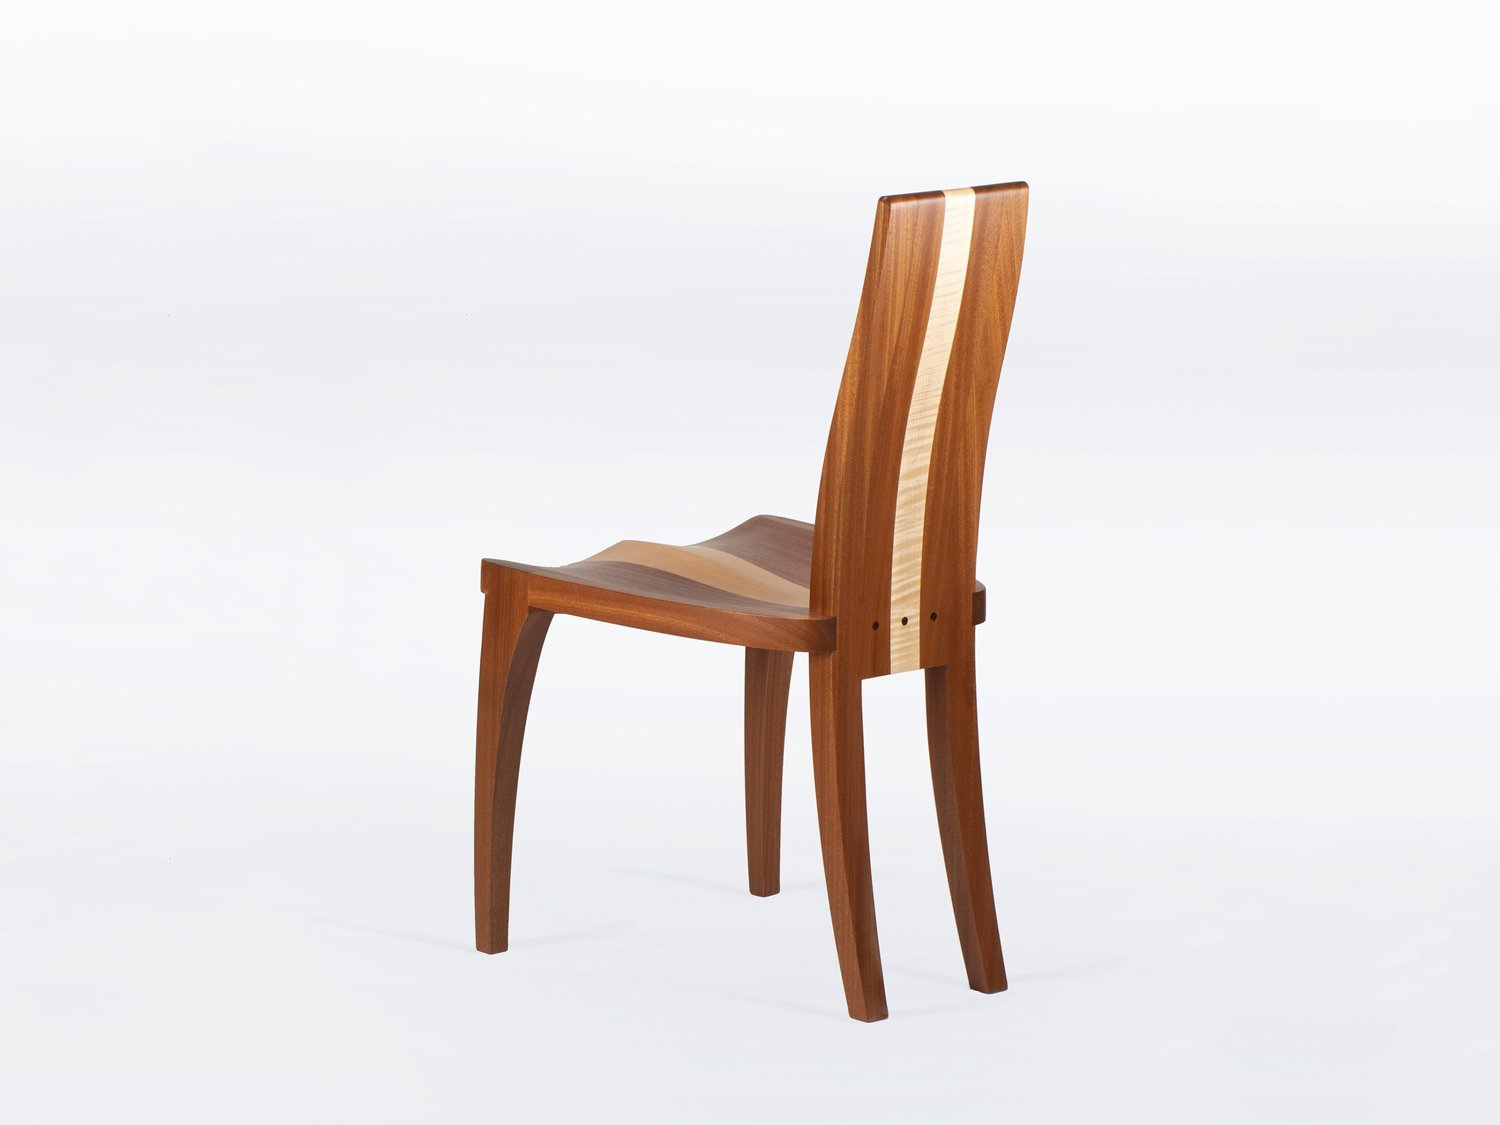 Modern dining chairs handmade in solid mahogany and maple wood available as single or set of chairs gazelle nathan hunter design